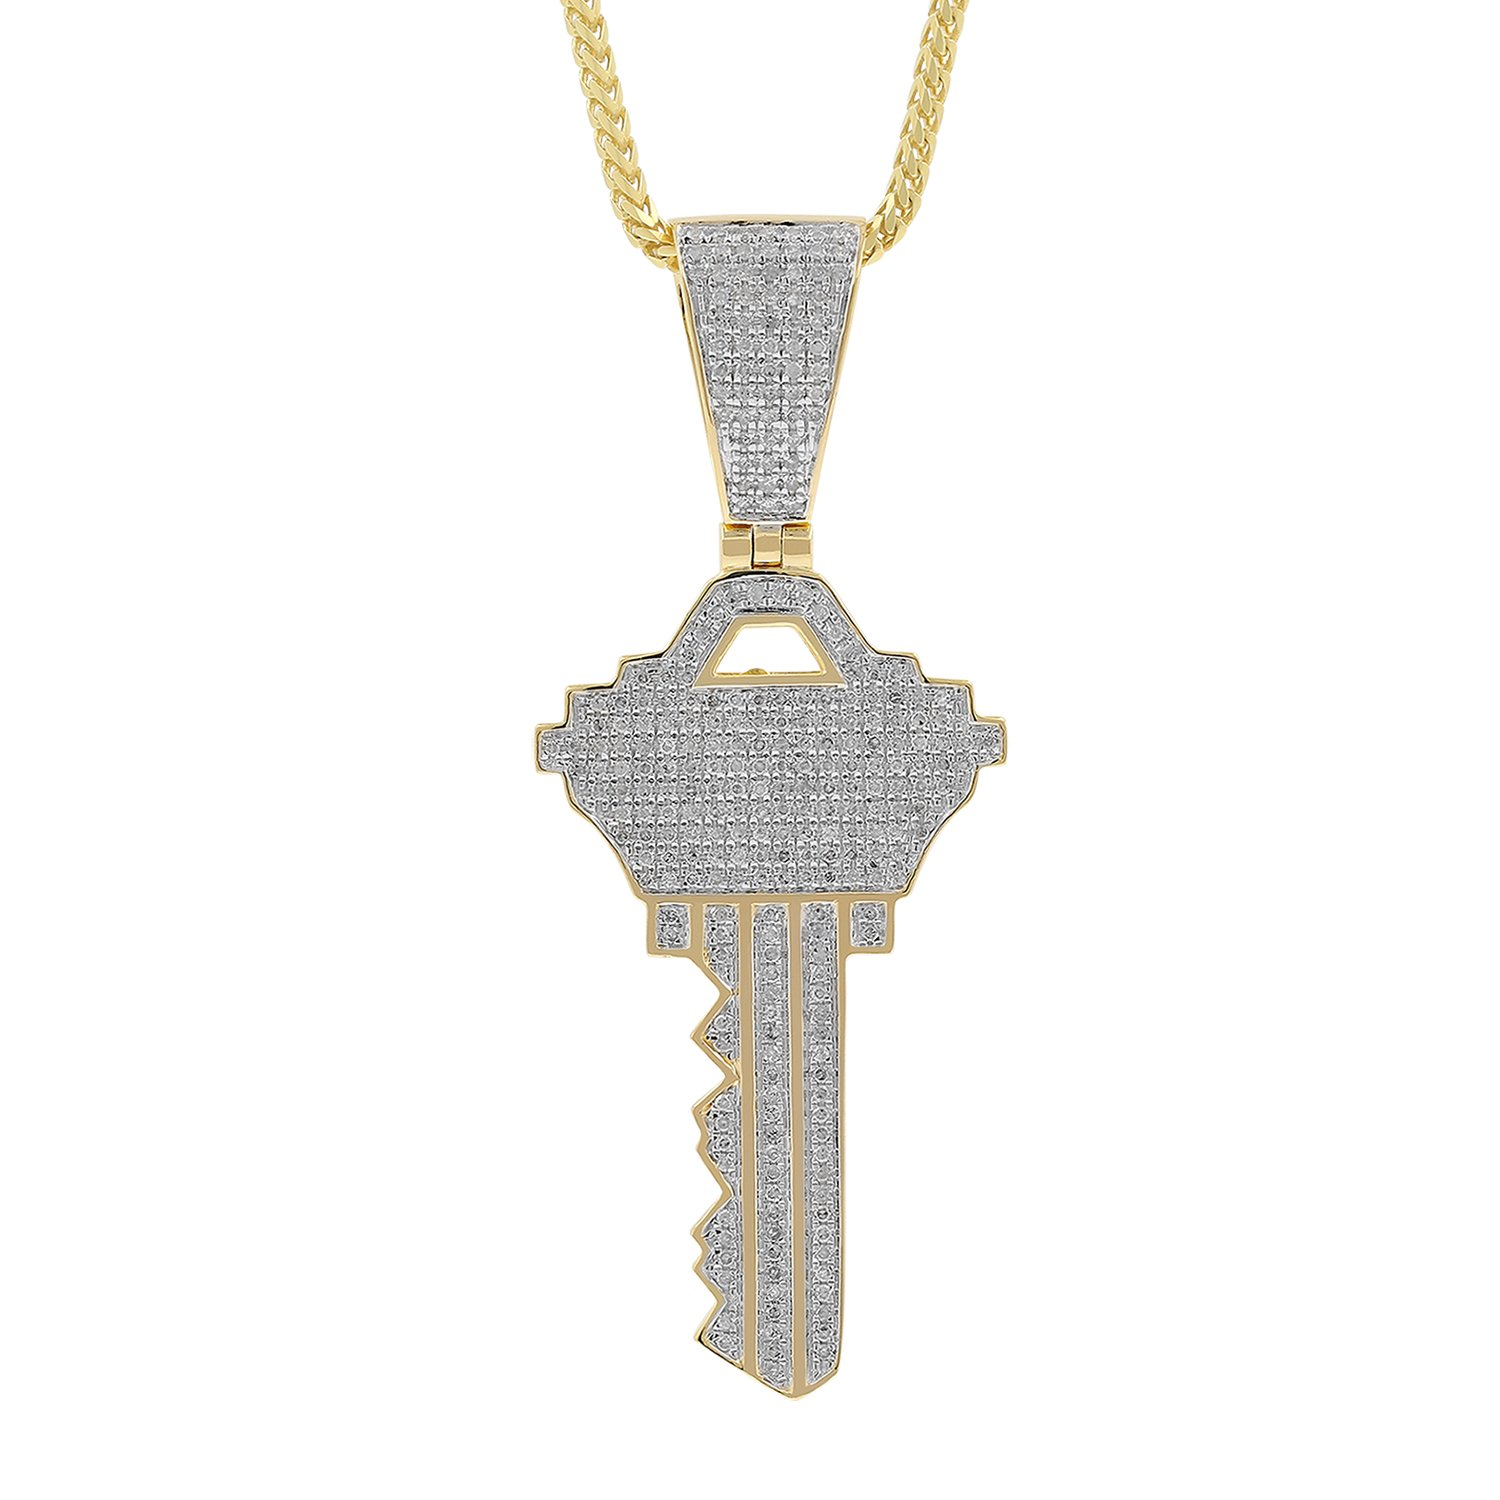 1.34ct Diamond Key Mens Hip Hop Pendant Necklace in Yellow Gold Over 925 Silver (H-I, I1-I2)